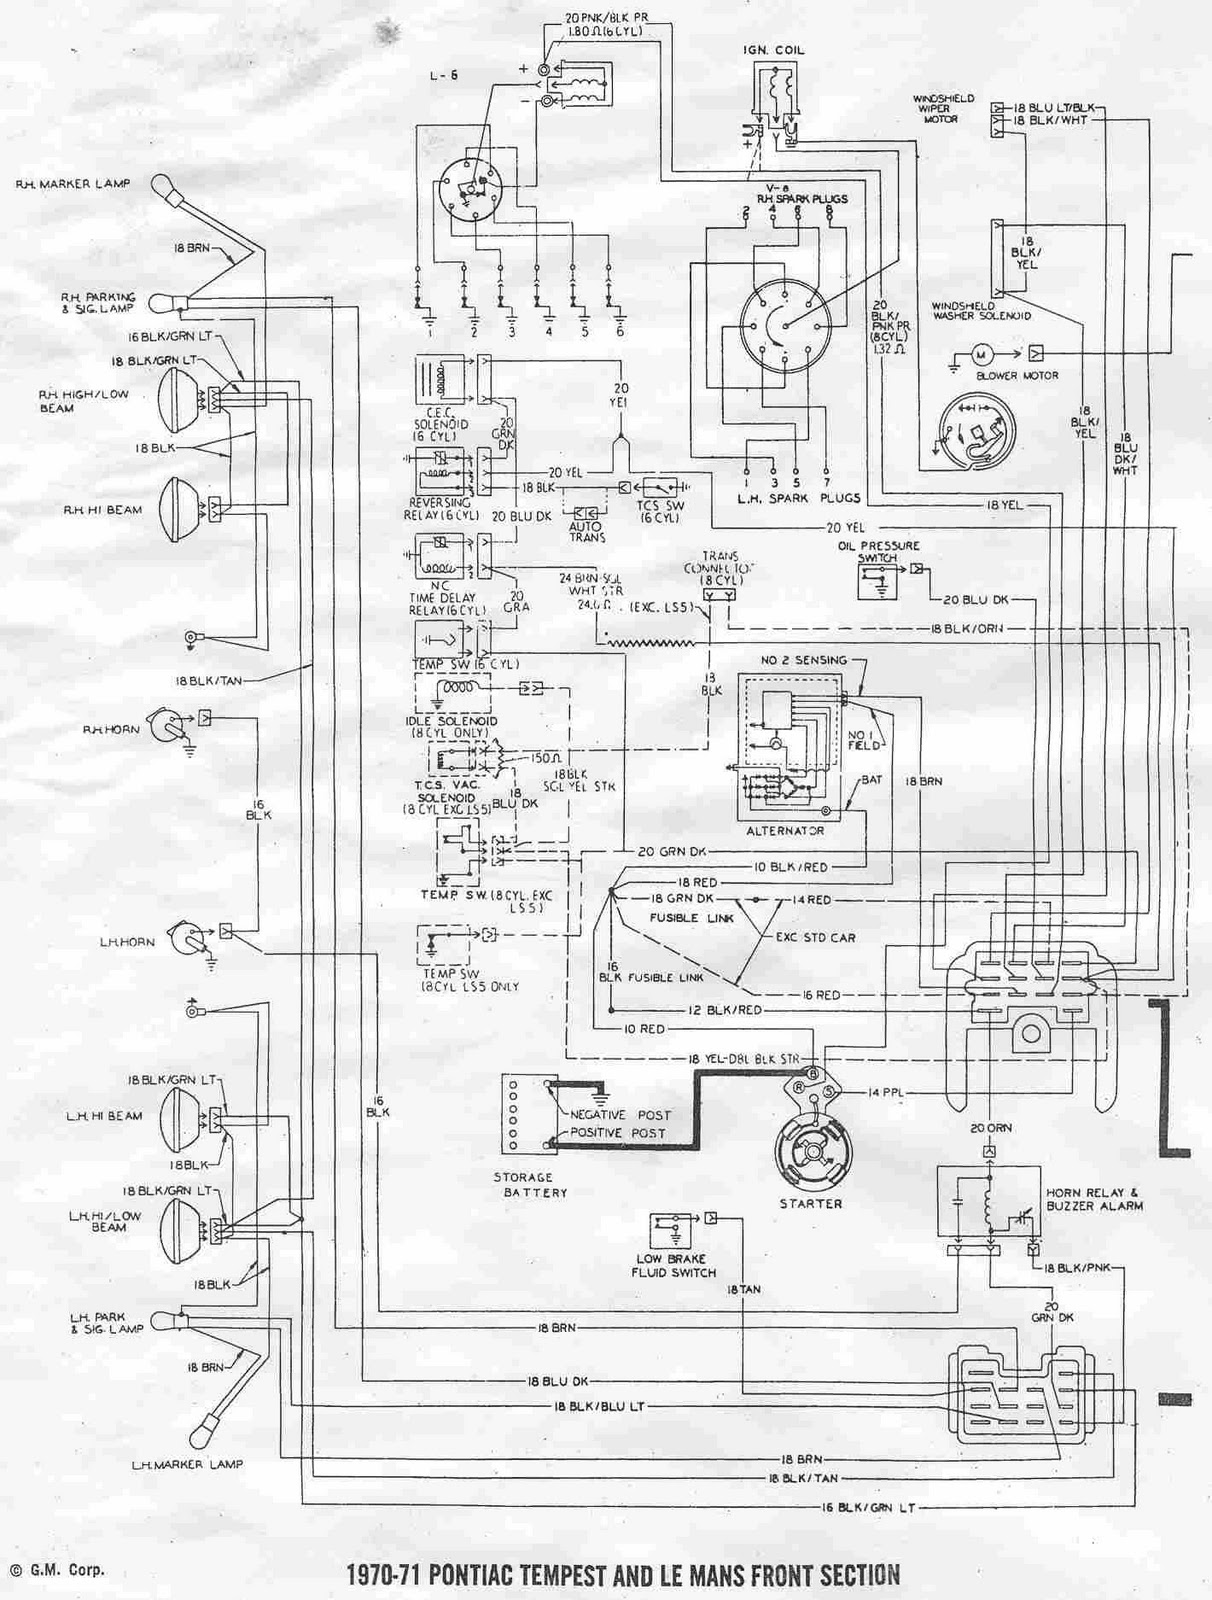 1967 Lemans Wiring Schematic - Wiring Diagrams Long on 1990 pontiac le mans, 1961 pontiac le mans, 1995 pontiac le mans, 1977 pontiac le mans, 77 pontiac le mans, convert 68 pontiac le mans, 1973 pontiac le mans, favourite 1968 pontiac le mans, 1979 pontiac le mans, pontiac tempest le mans, wheels for 1966 le mans, 1967 pontiac le mans, 1989 pontiac le mans, 1964 pontiac le mans,